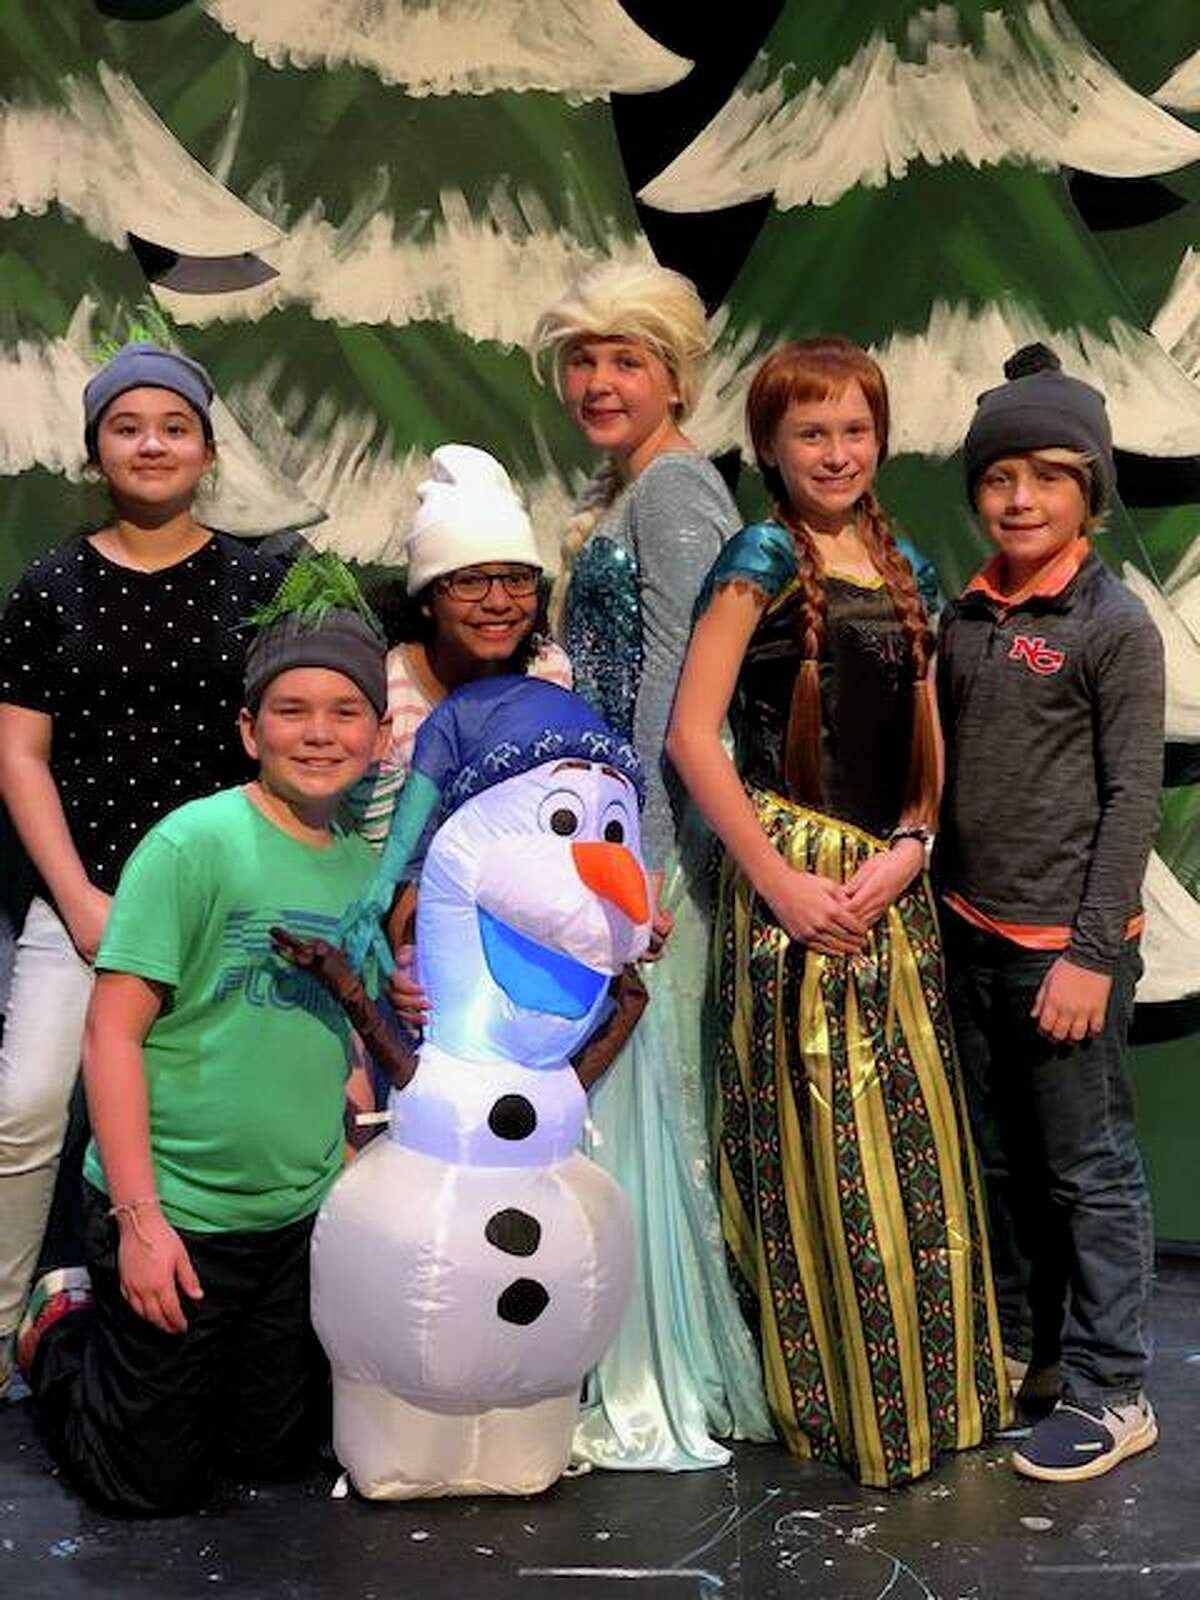 Saxe Middle School fifth and sixth grade production of Frozen Jr. will be held Friday, Nov. 15, at 7 p.m. and Saturday, Nov. 16, at 11 a.m. and 2 p.m., in the Saxe Middle School Theater.